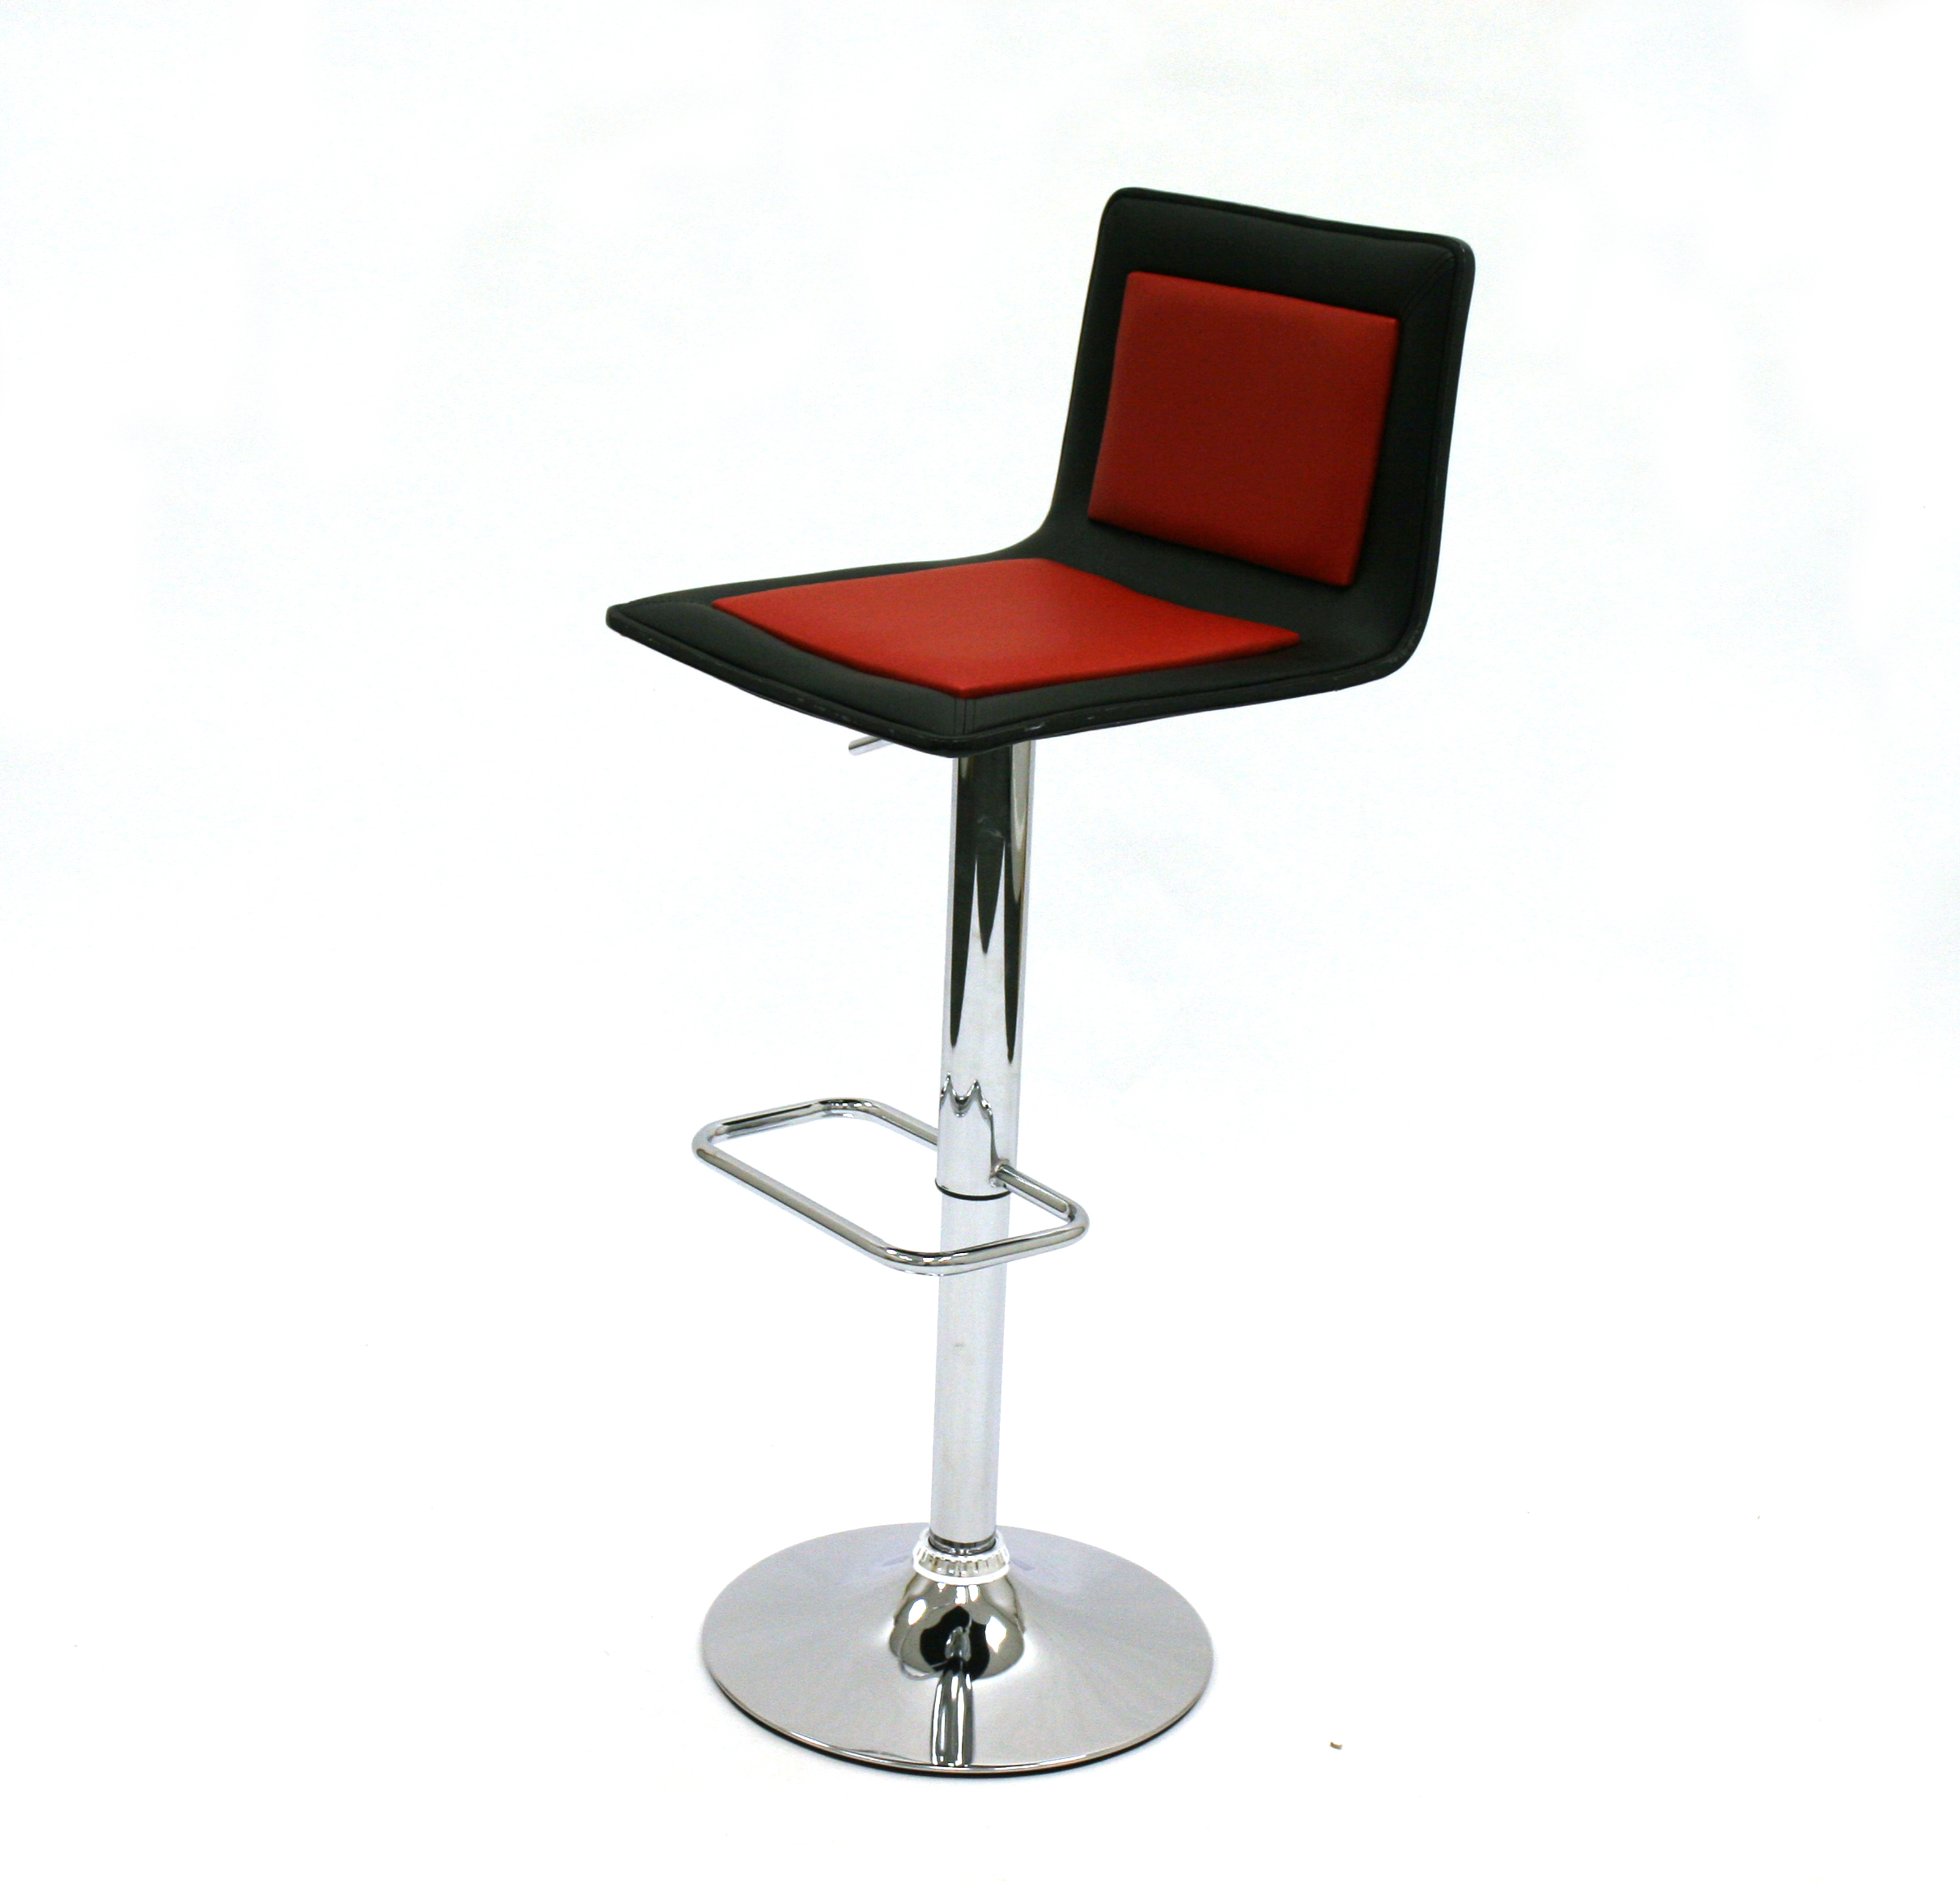 Black red leather bar stools cafes events home use be furniture sales